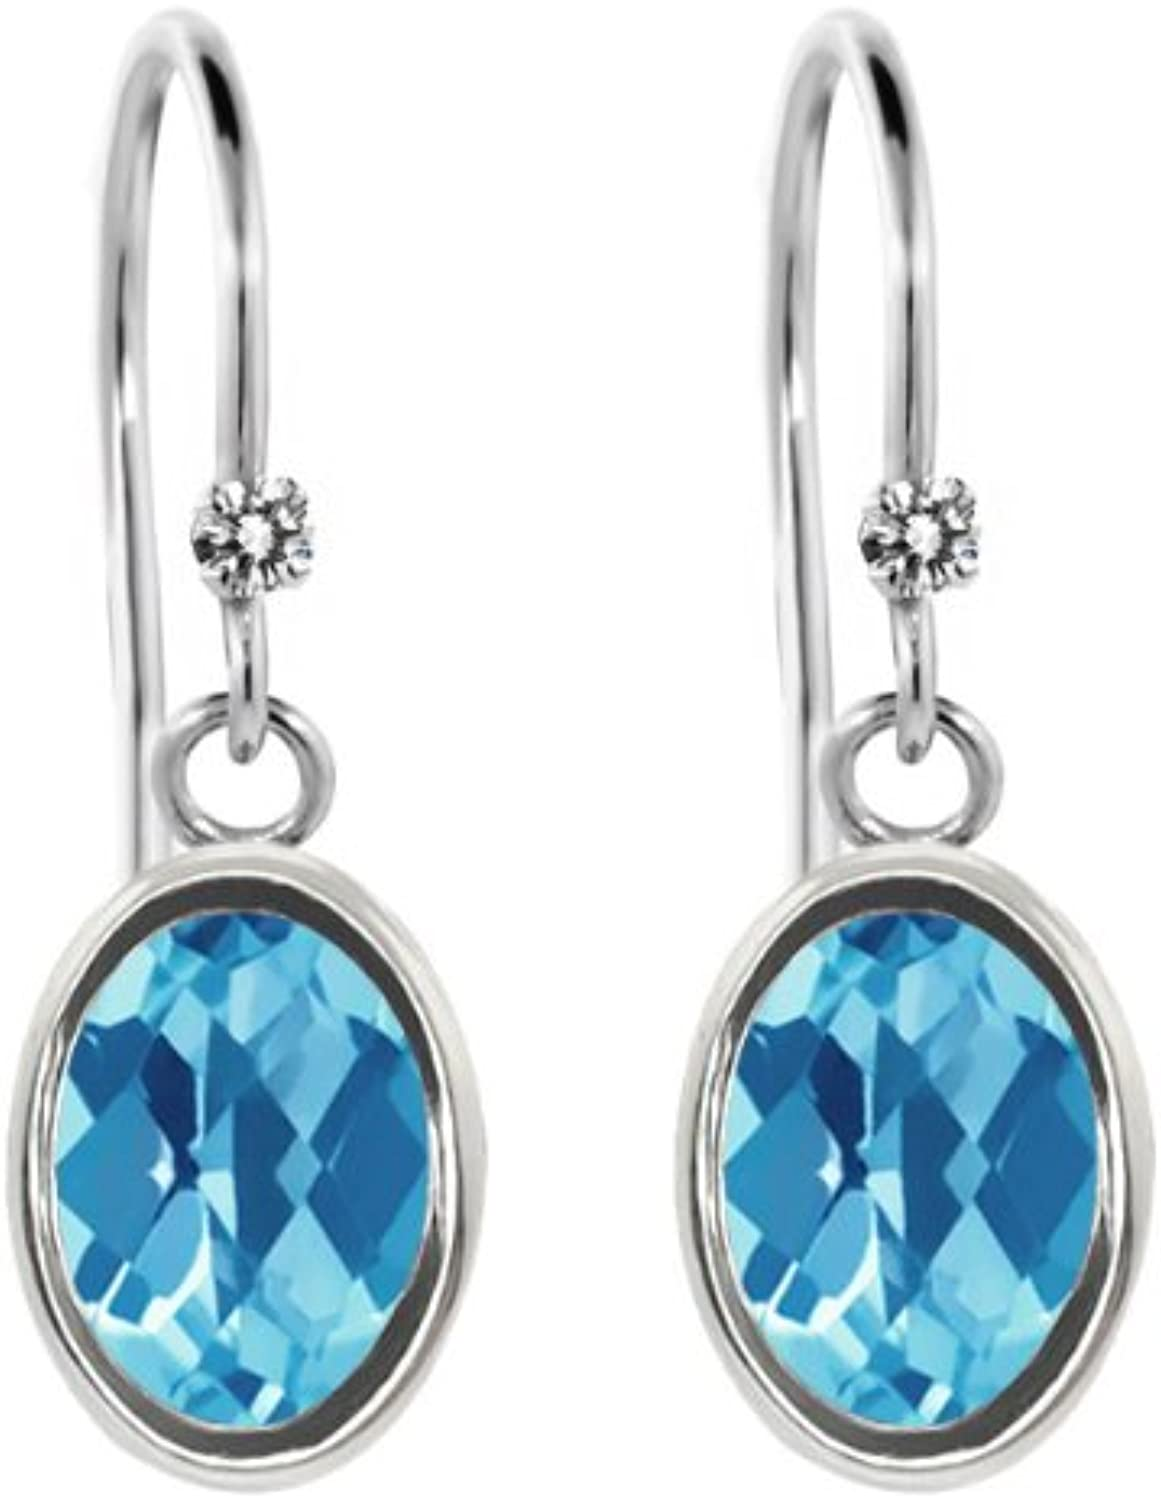 1.92 Ct Oval Checkerboard Swiss bluee Topaz White Diamond 925 Silver Earrings